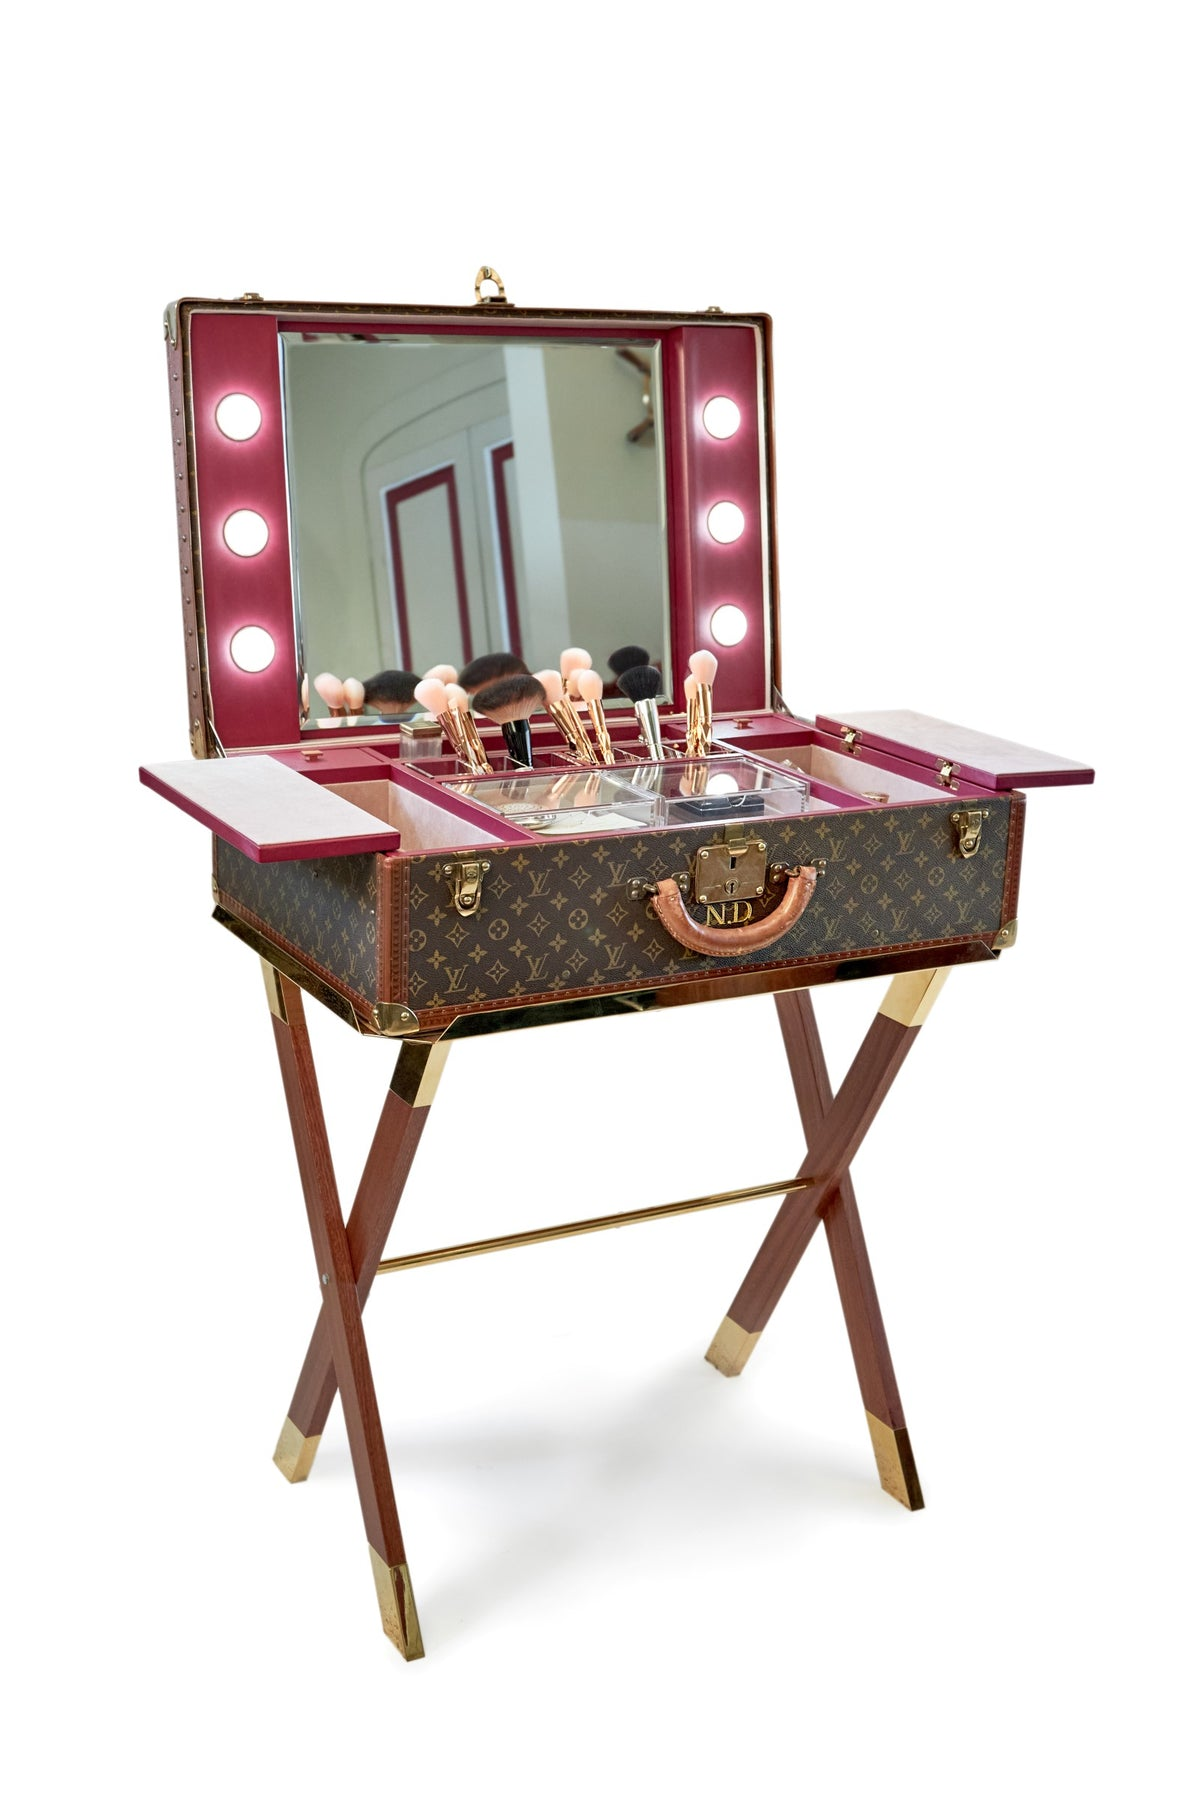 A Singular Bernardini Vanity Dressing Table in a fine vintage Louis Vuitton suitcase